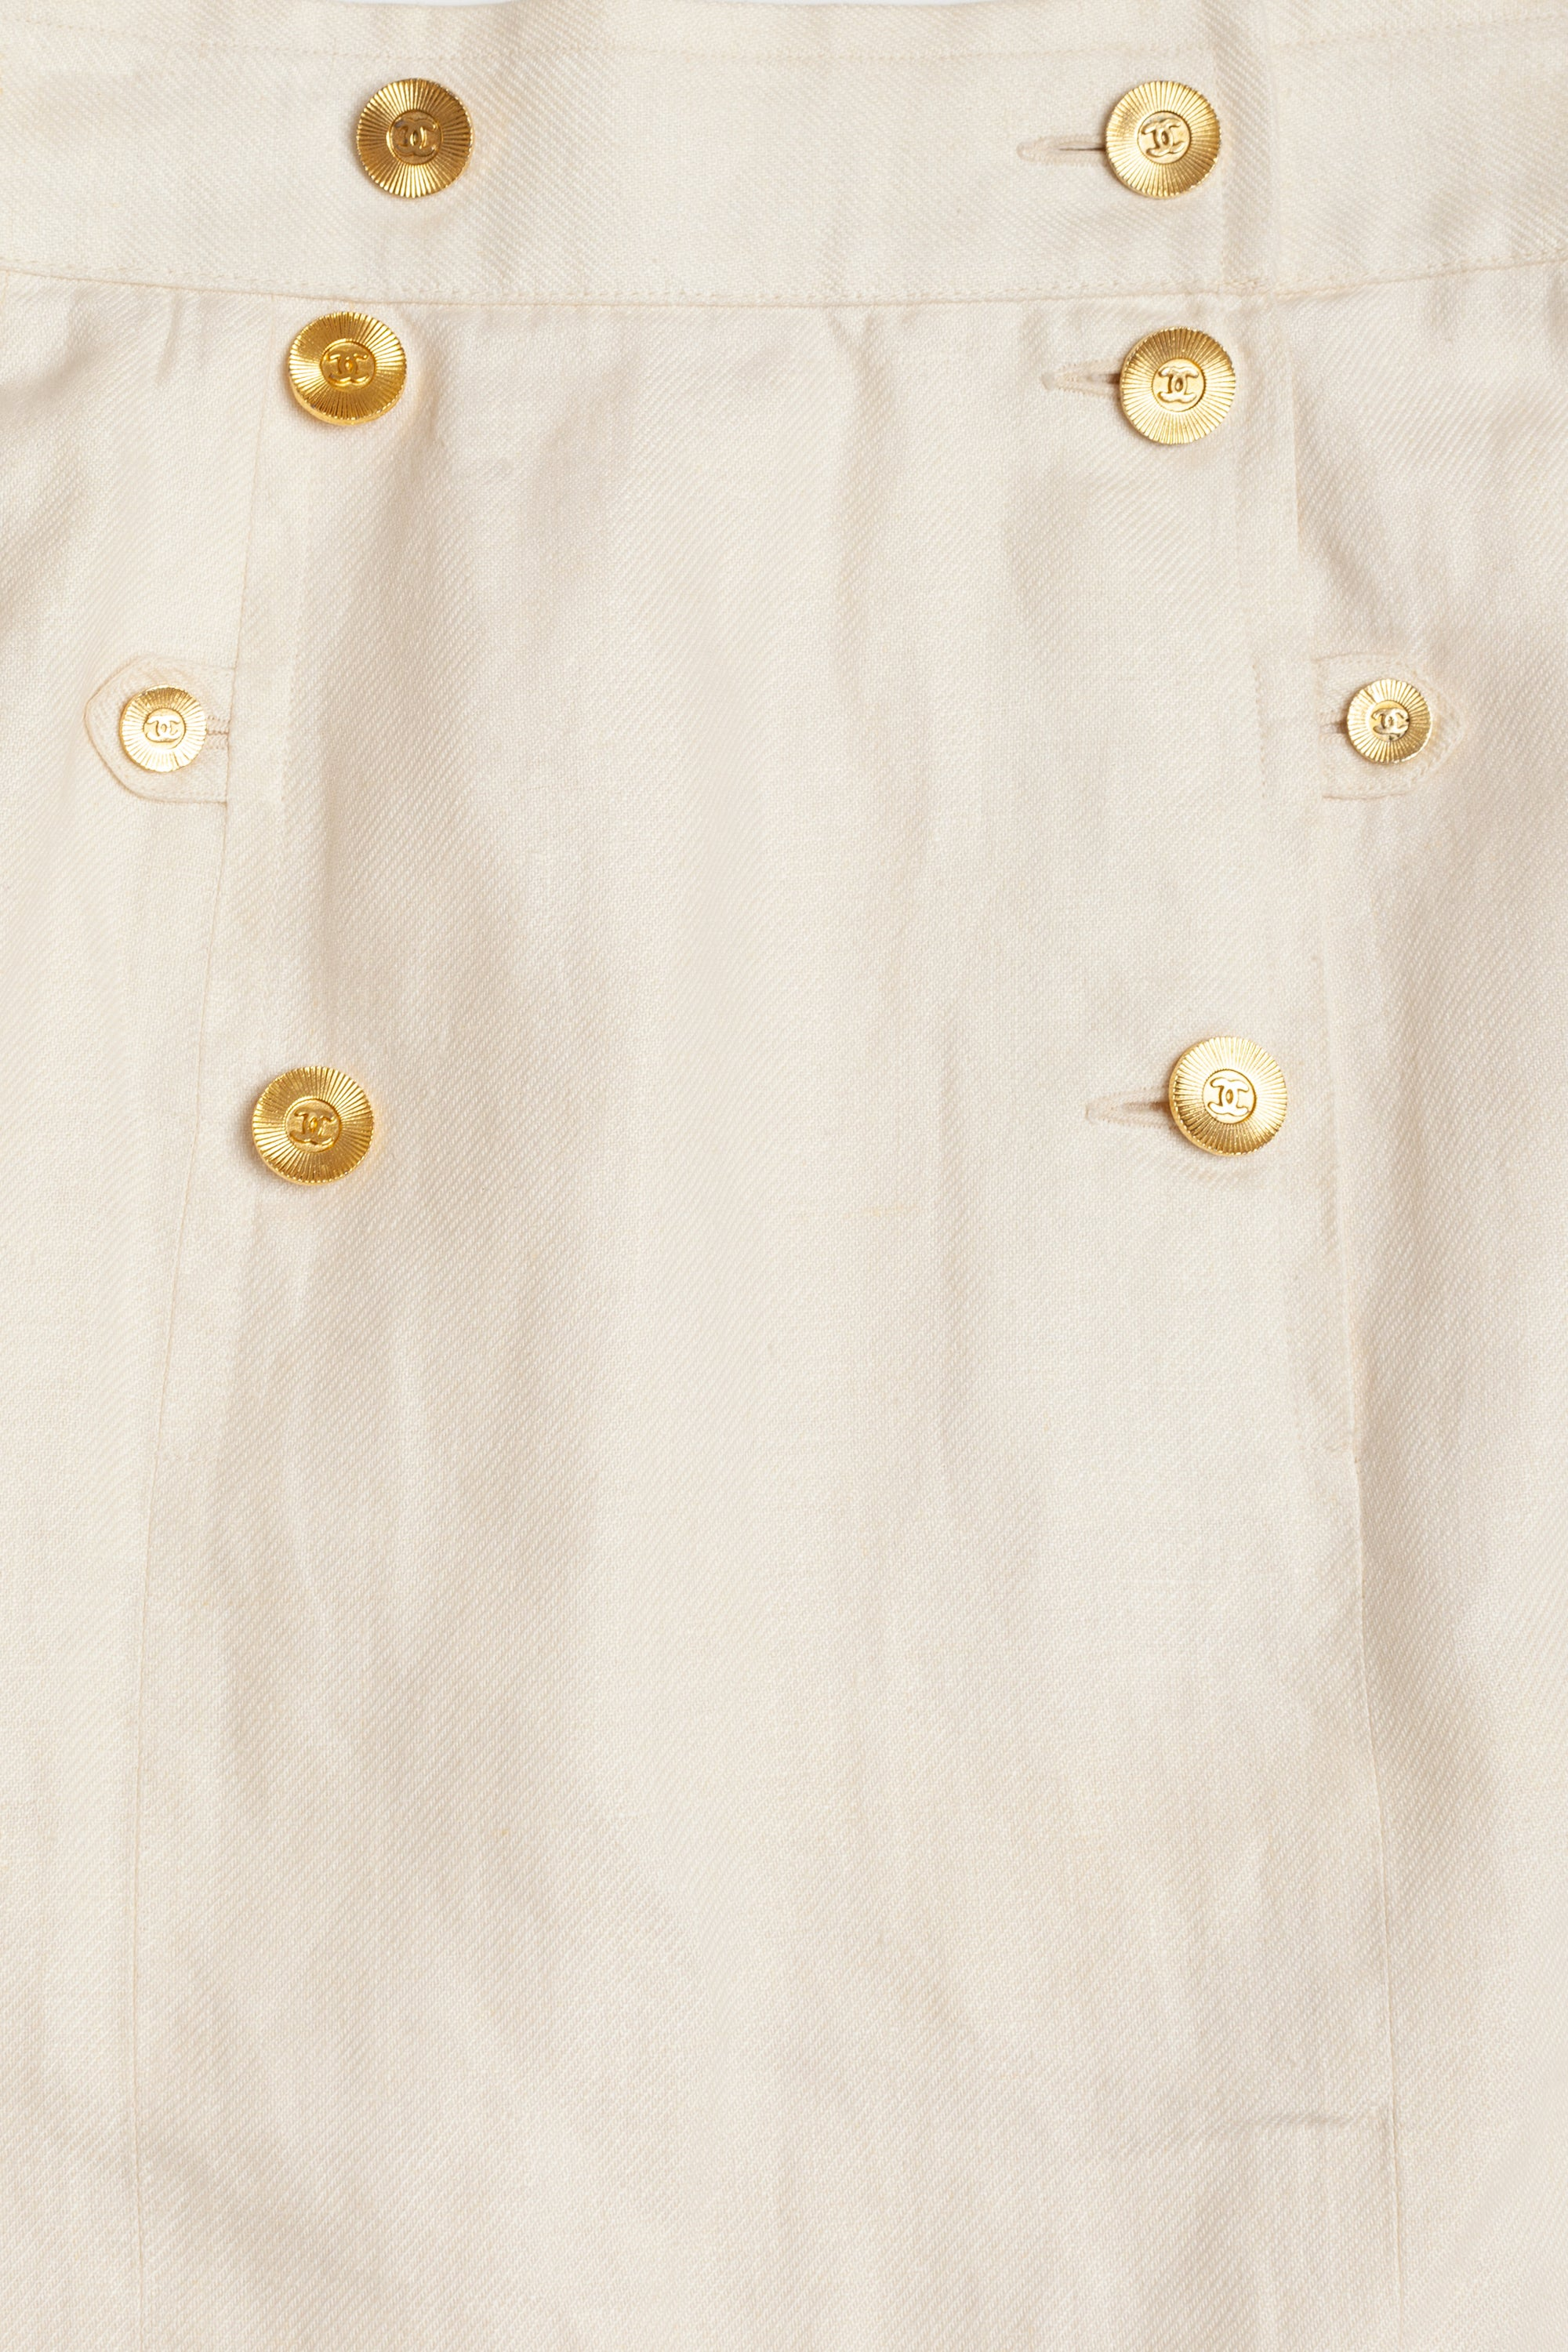 Chanel <br> 80's high-waisted linen skirt with logo buttons